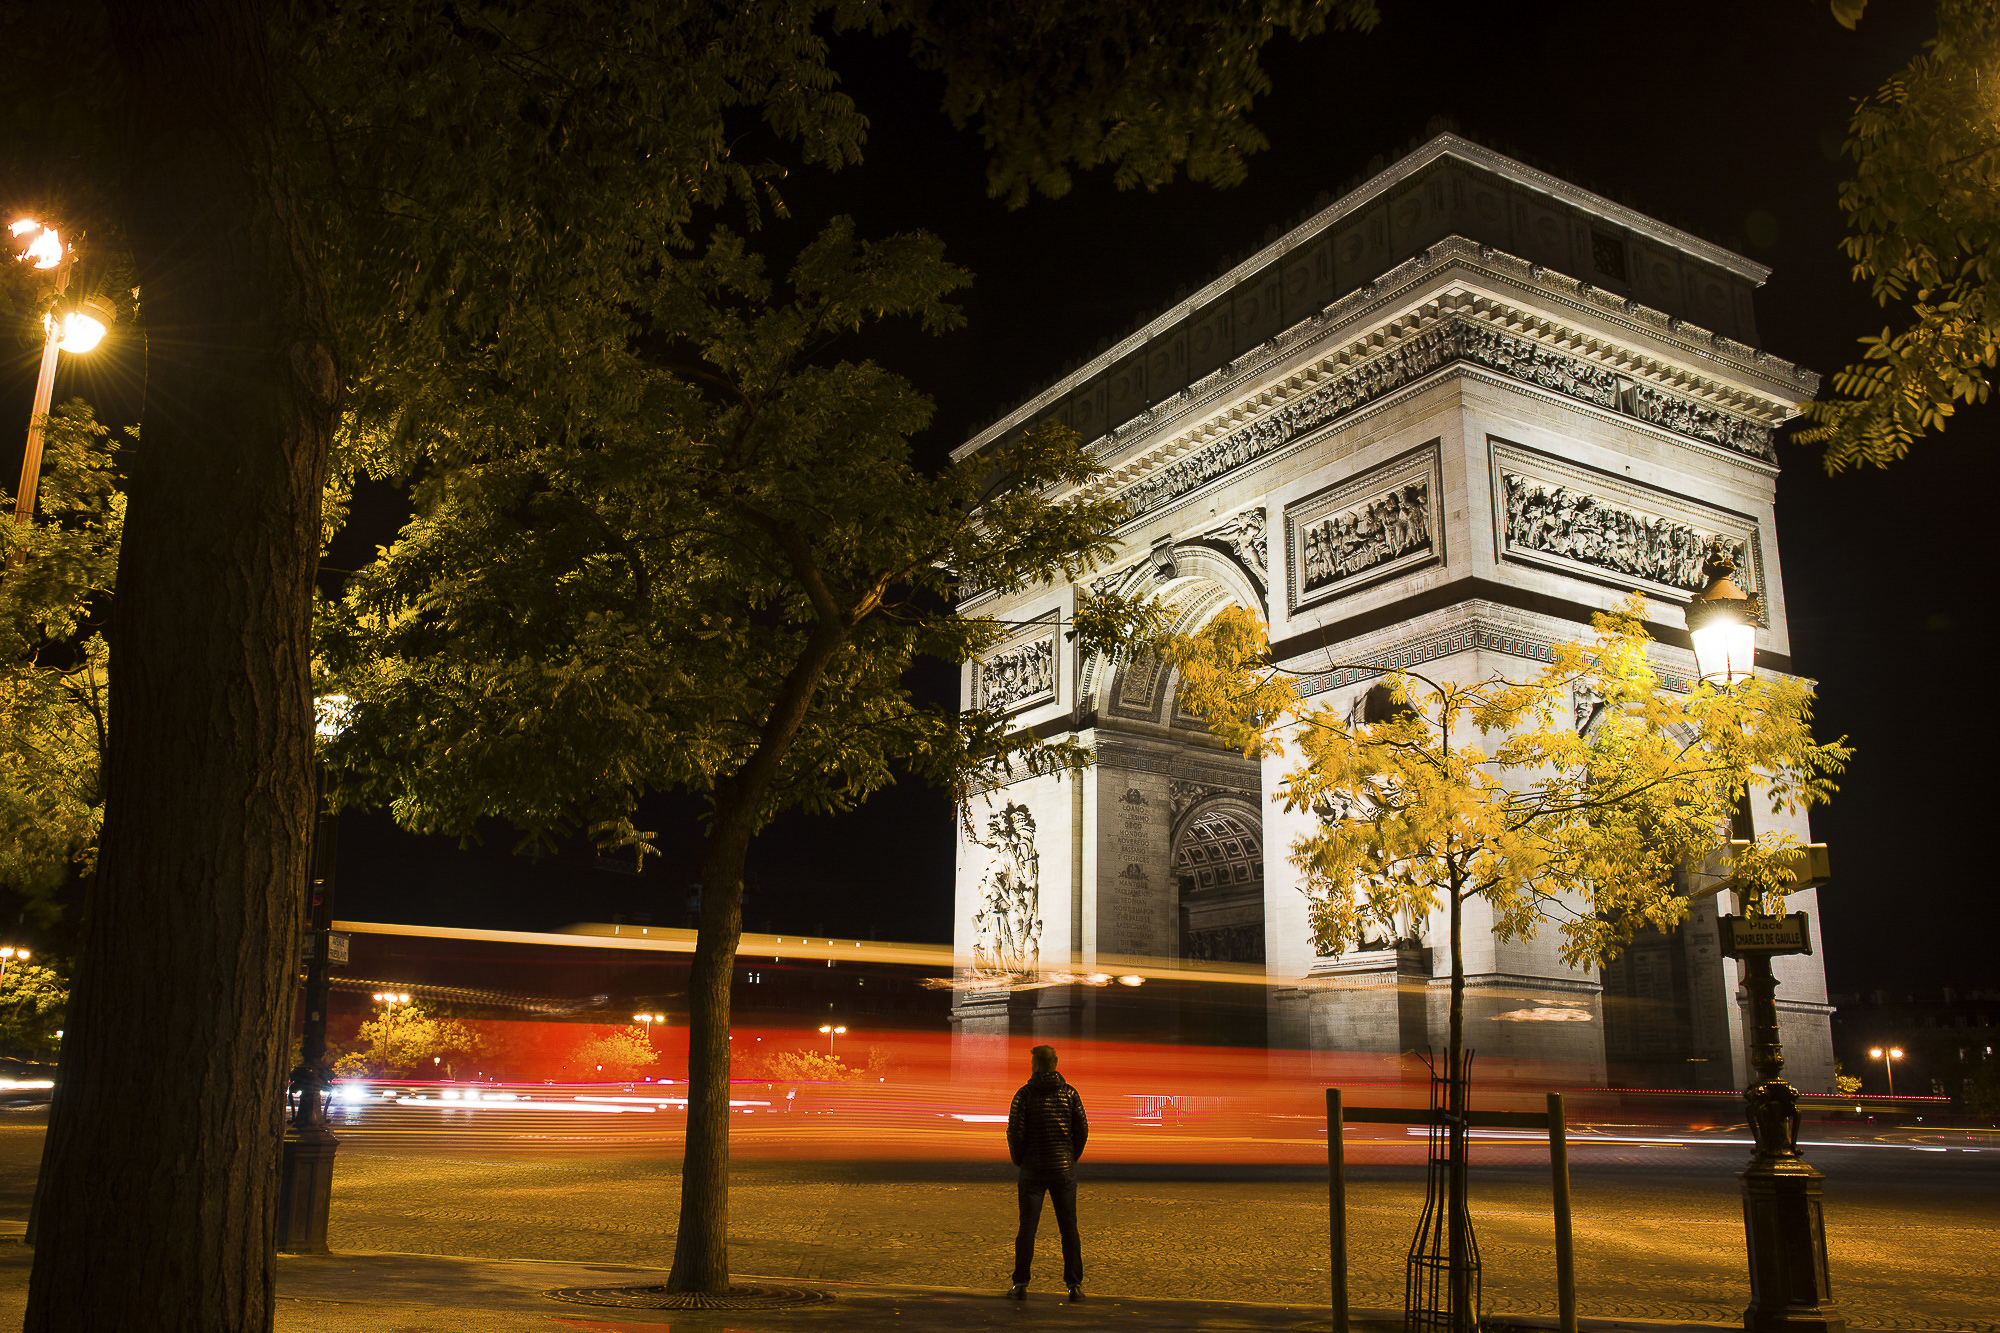 paris-night-photo-tour-015.jpg